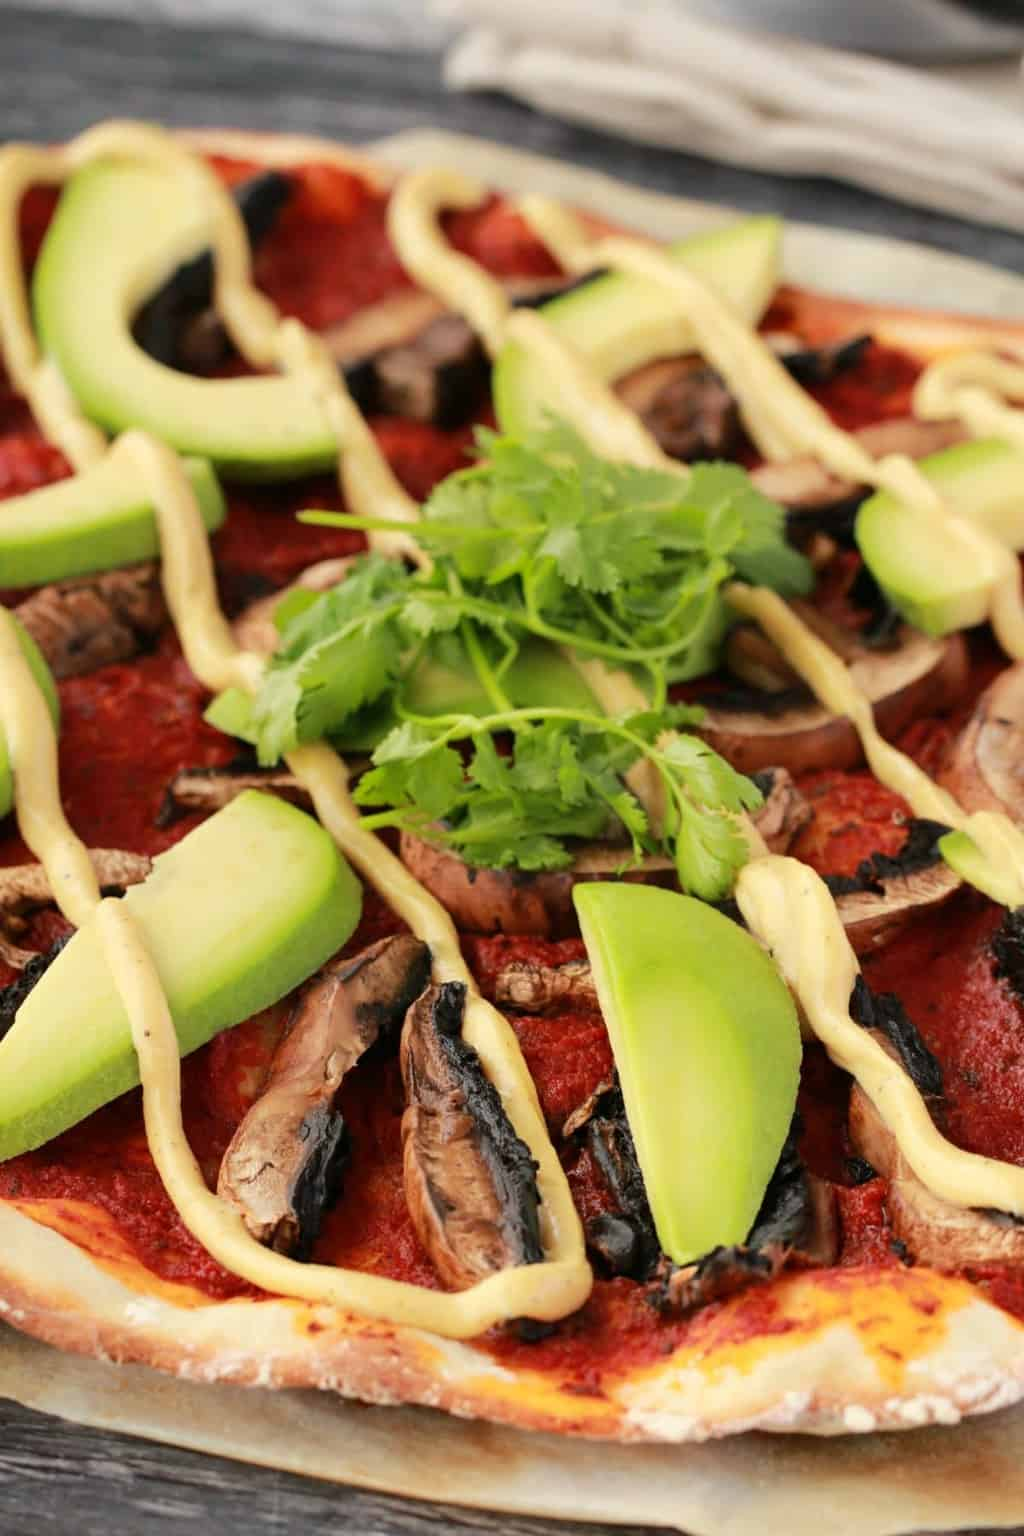 Homemade pizza with tomato sauce, black mushrooms, sliced avocado and a drizzle of cashew cheese